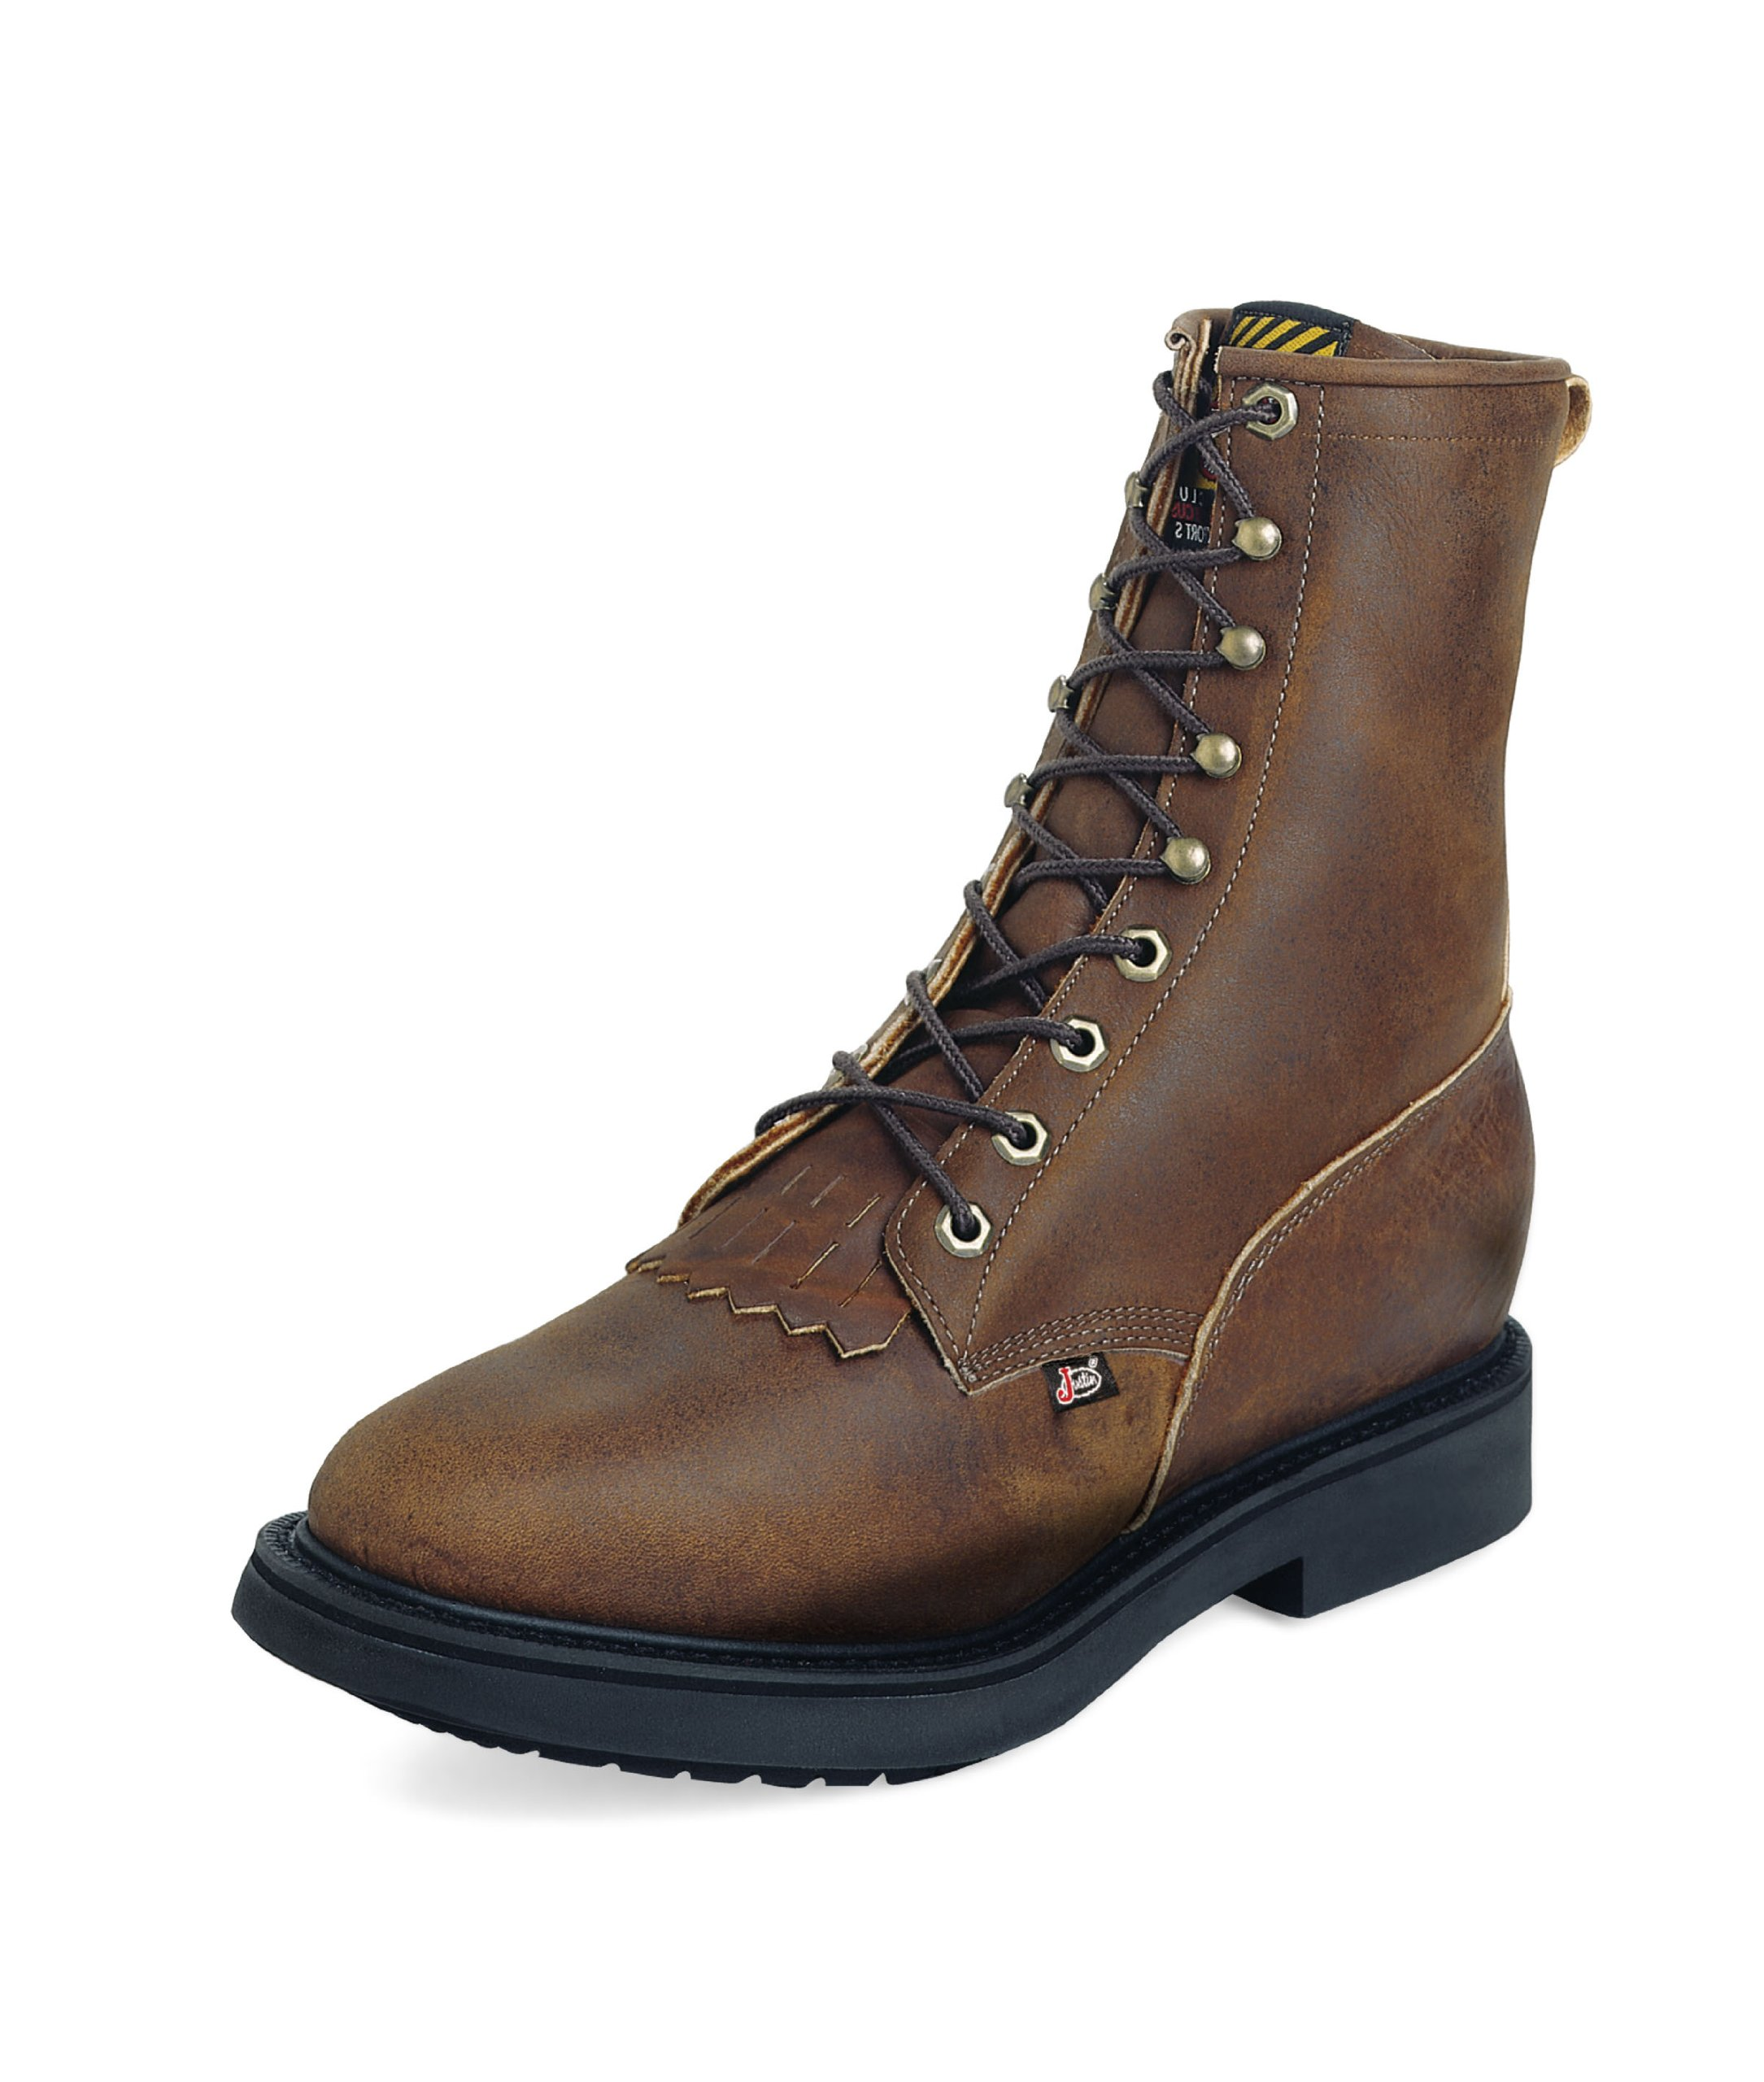 Justin Original Workboots Style L0760 Women'ss Boots - Size : 7 B by Justin Work Boots